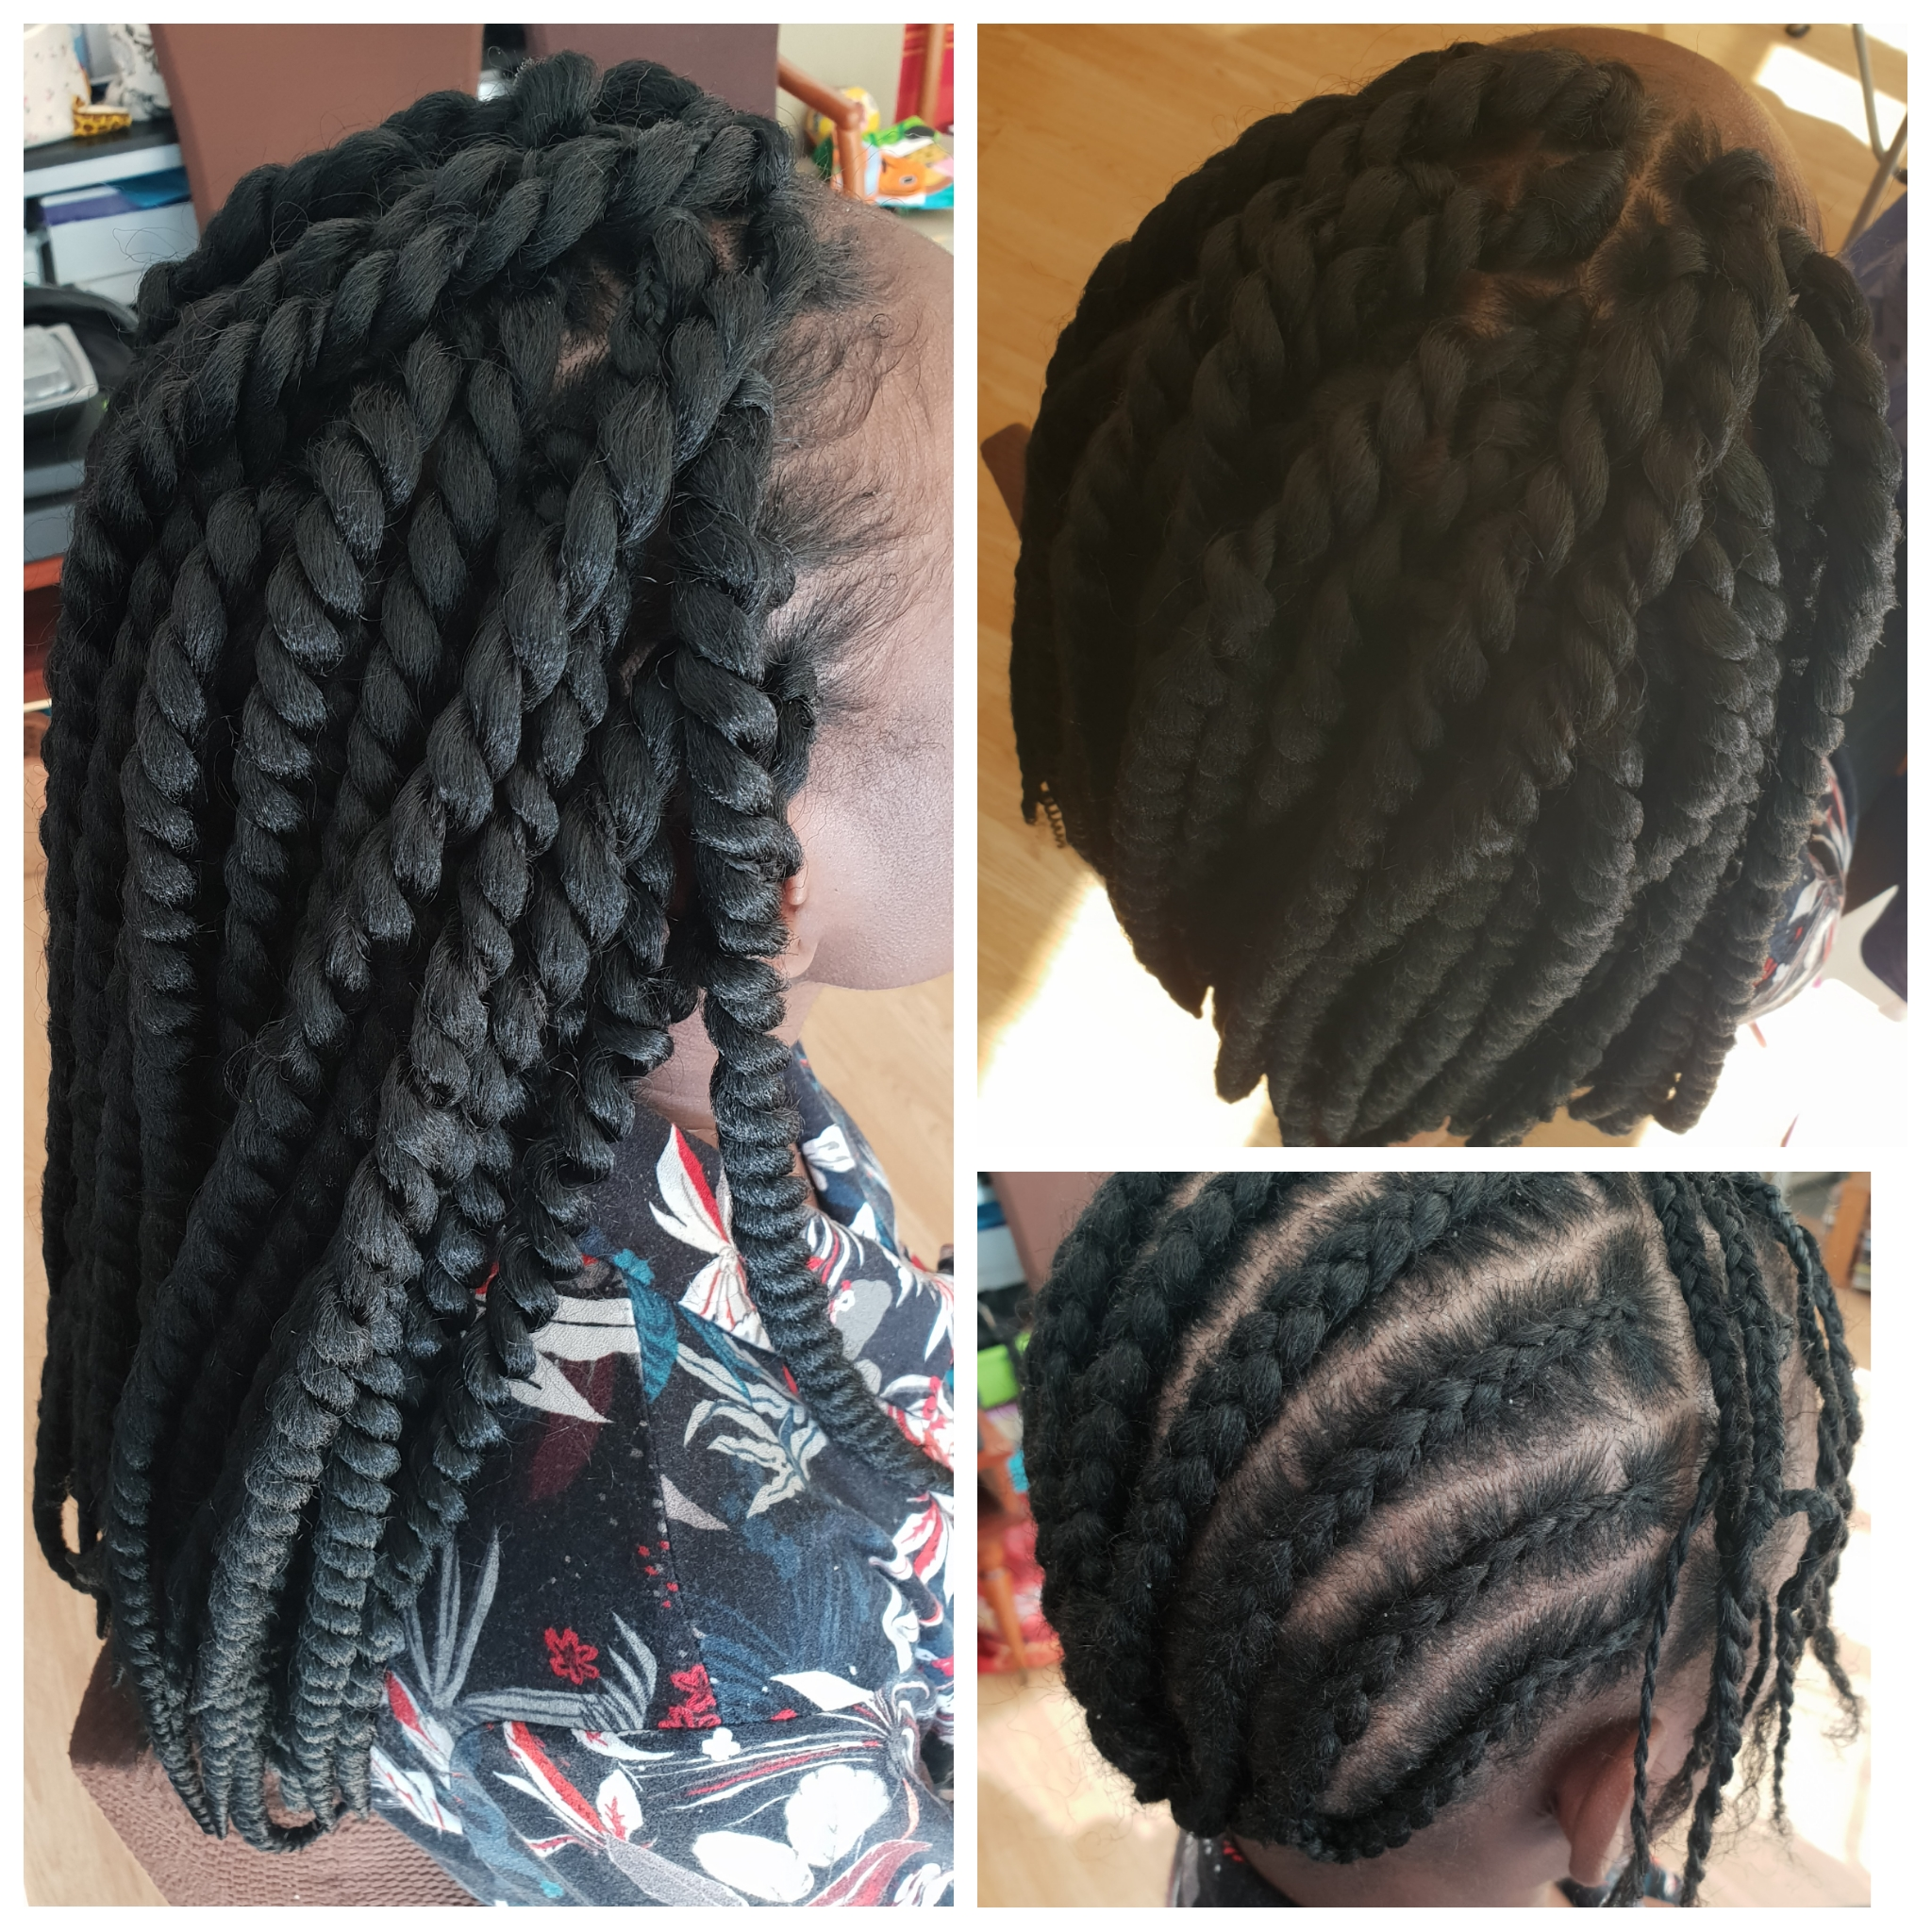 salon de coiffure afro tresse tresses box braids crochet braids vanilles tissages paris 75 77 78 91 92 93 94 95 COYQDAXE